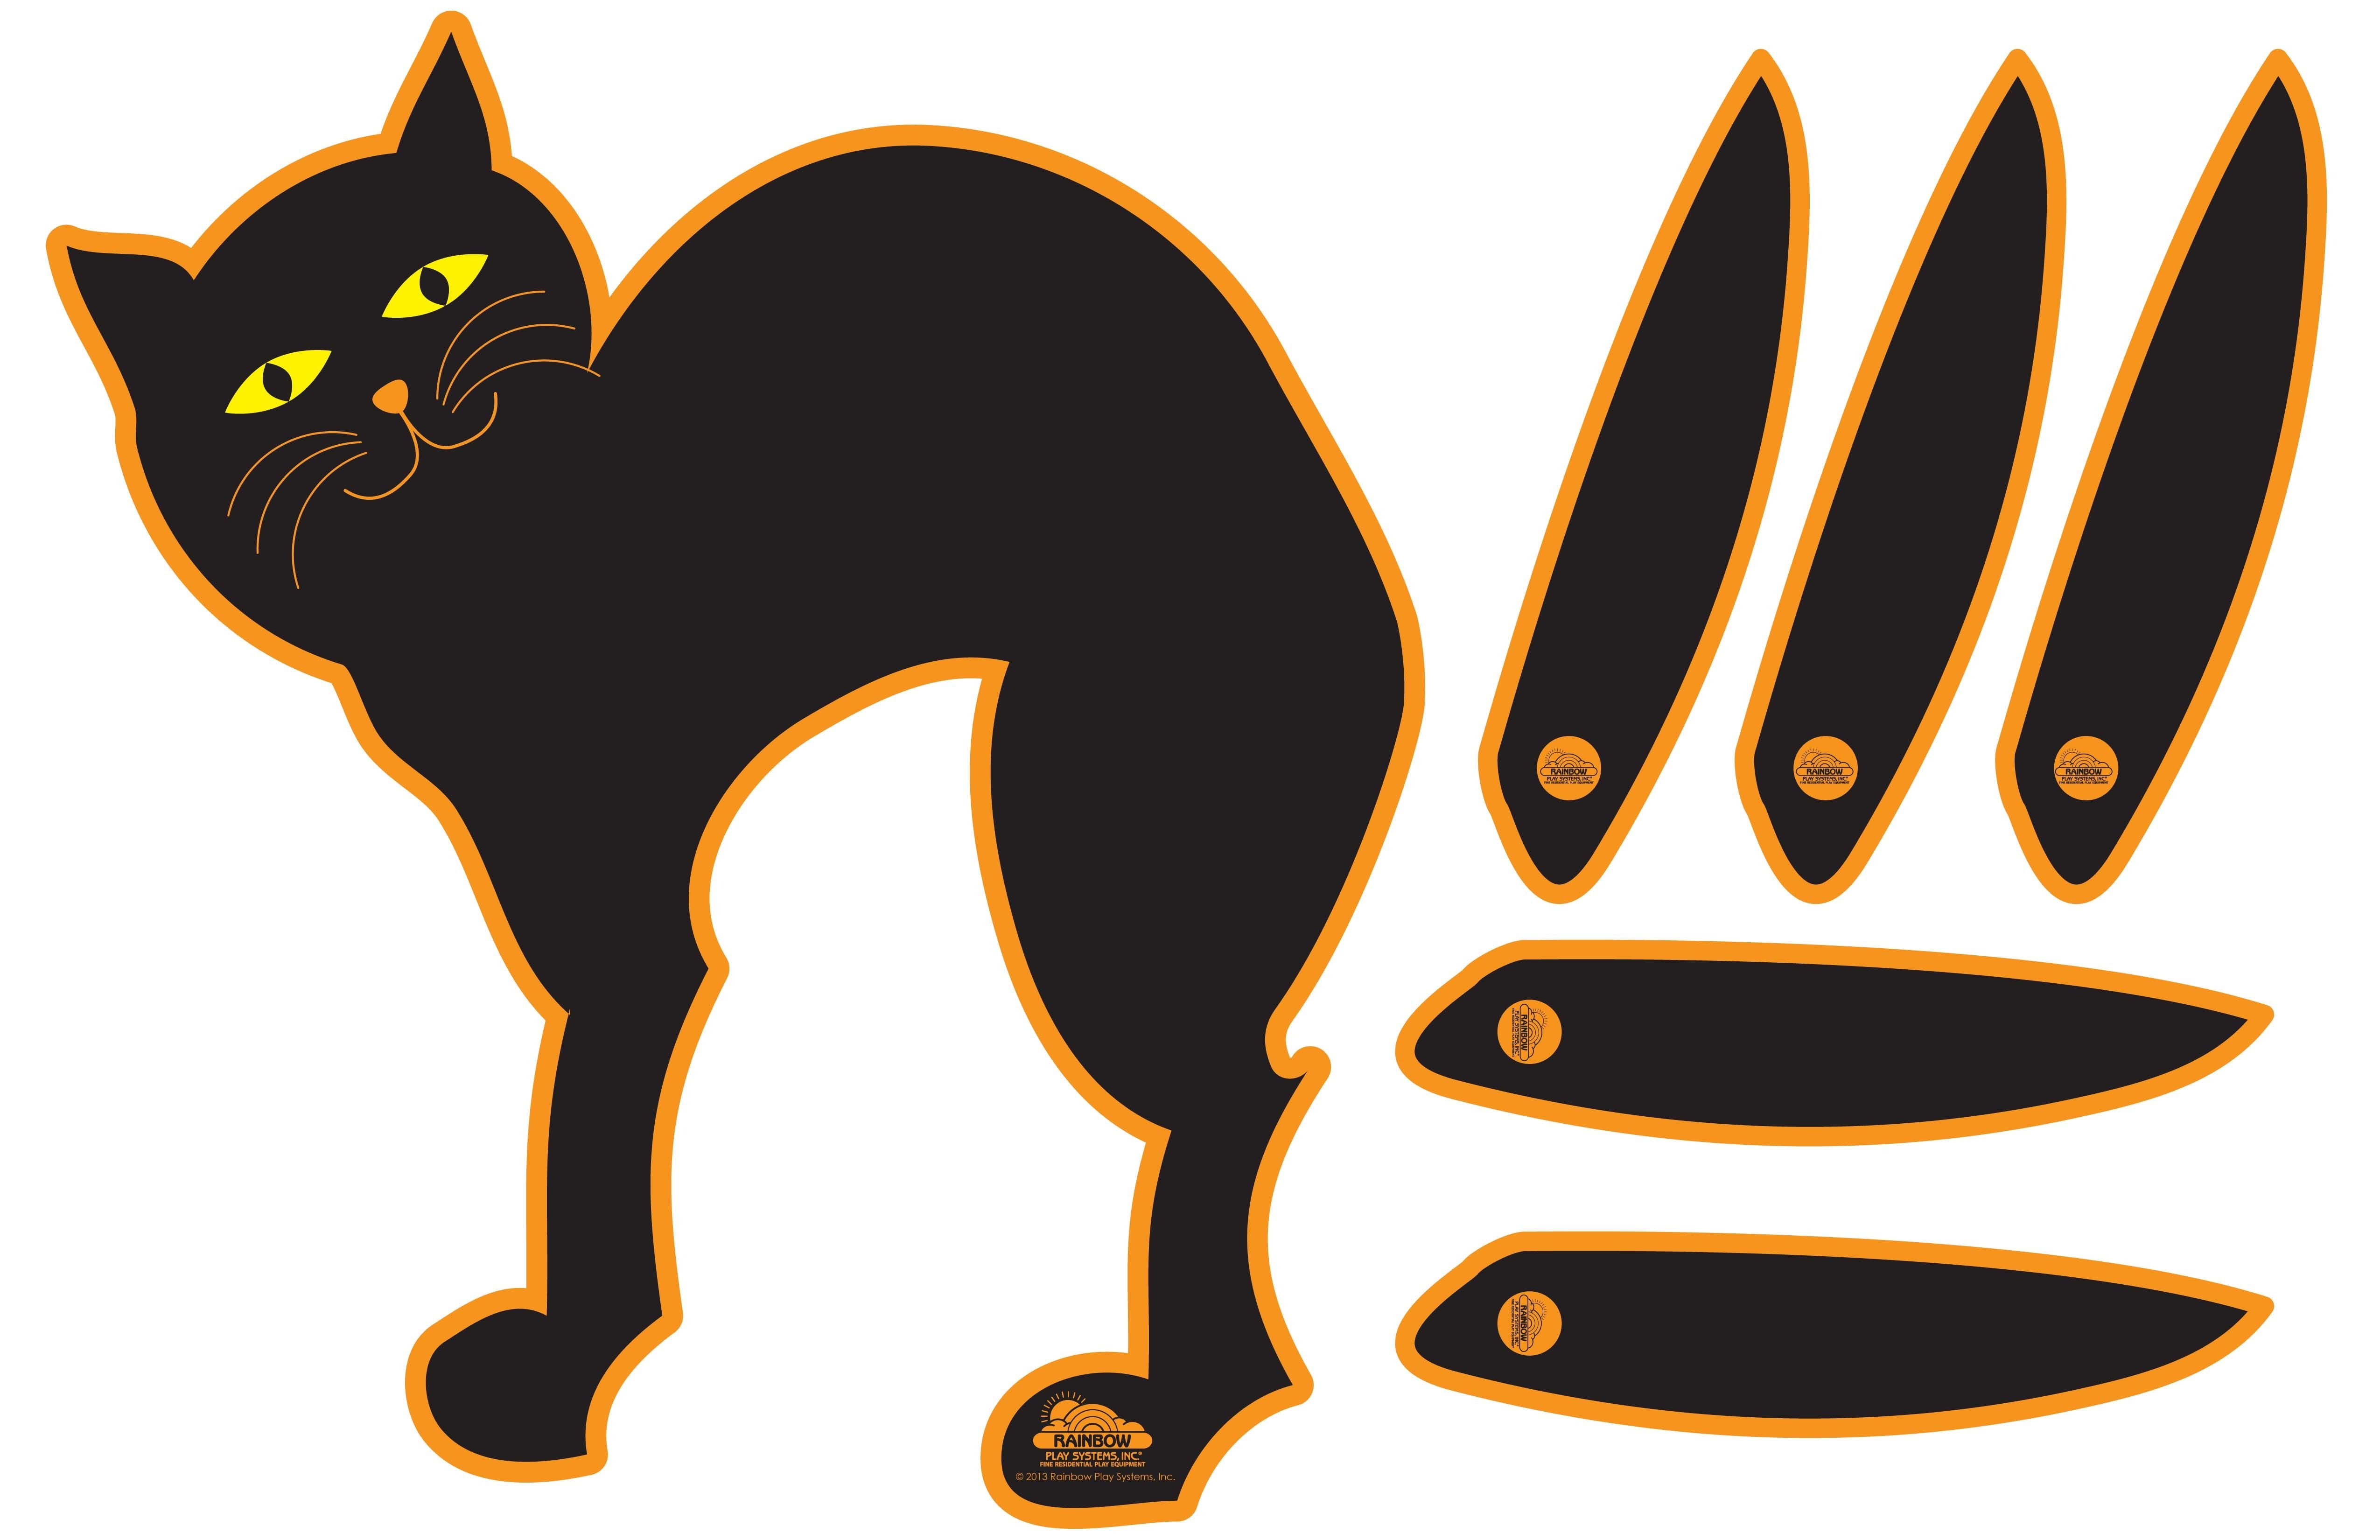 Pin The Tail On The Cat | Kids Holiday - Halloween Activities | Fun - Free Printable Pin The Tail On The Cat